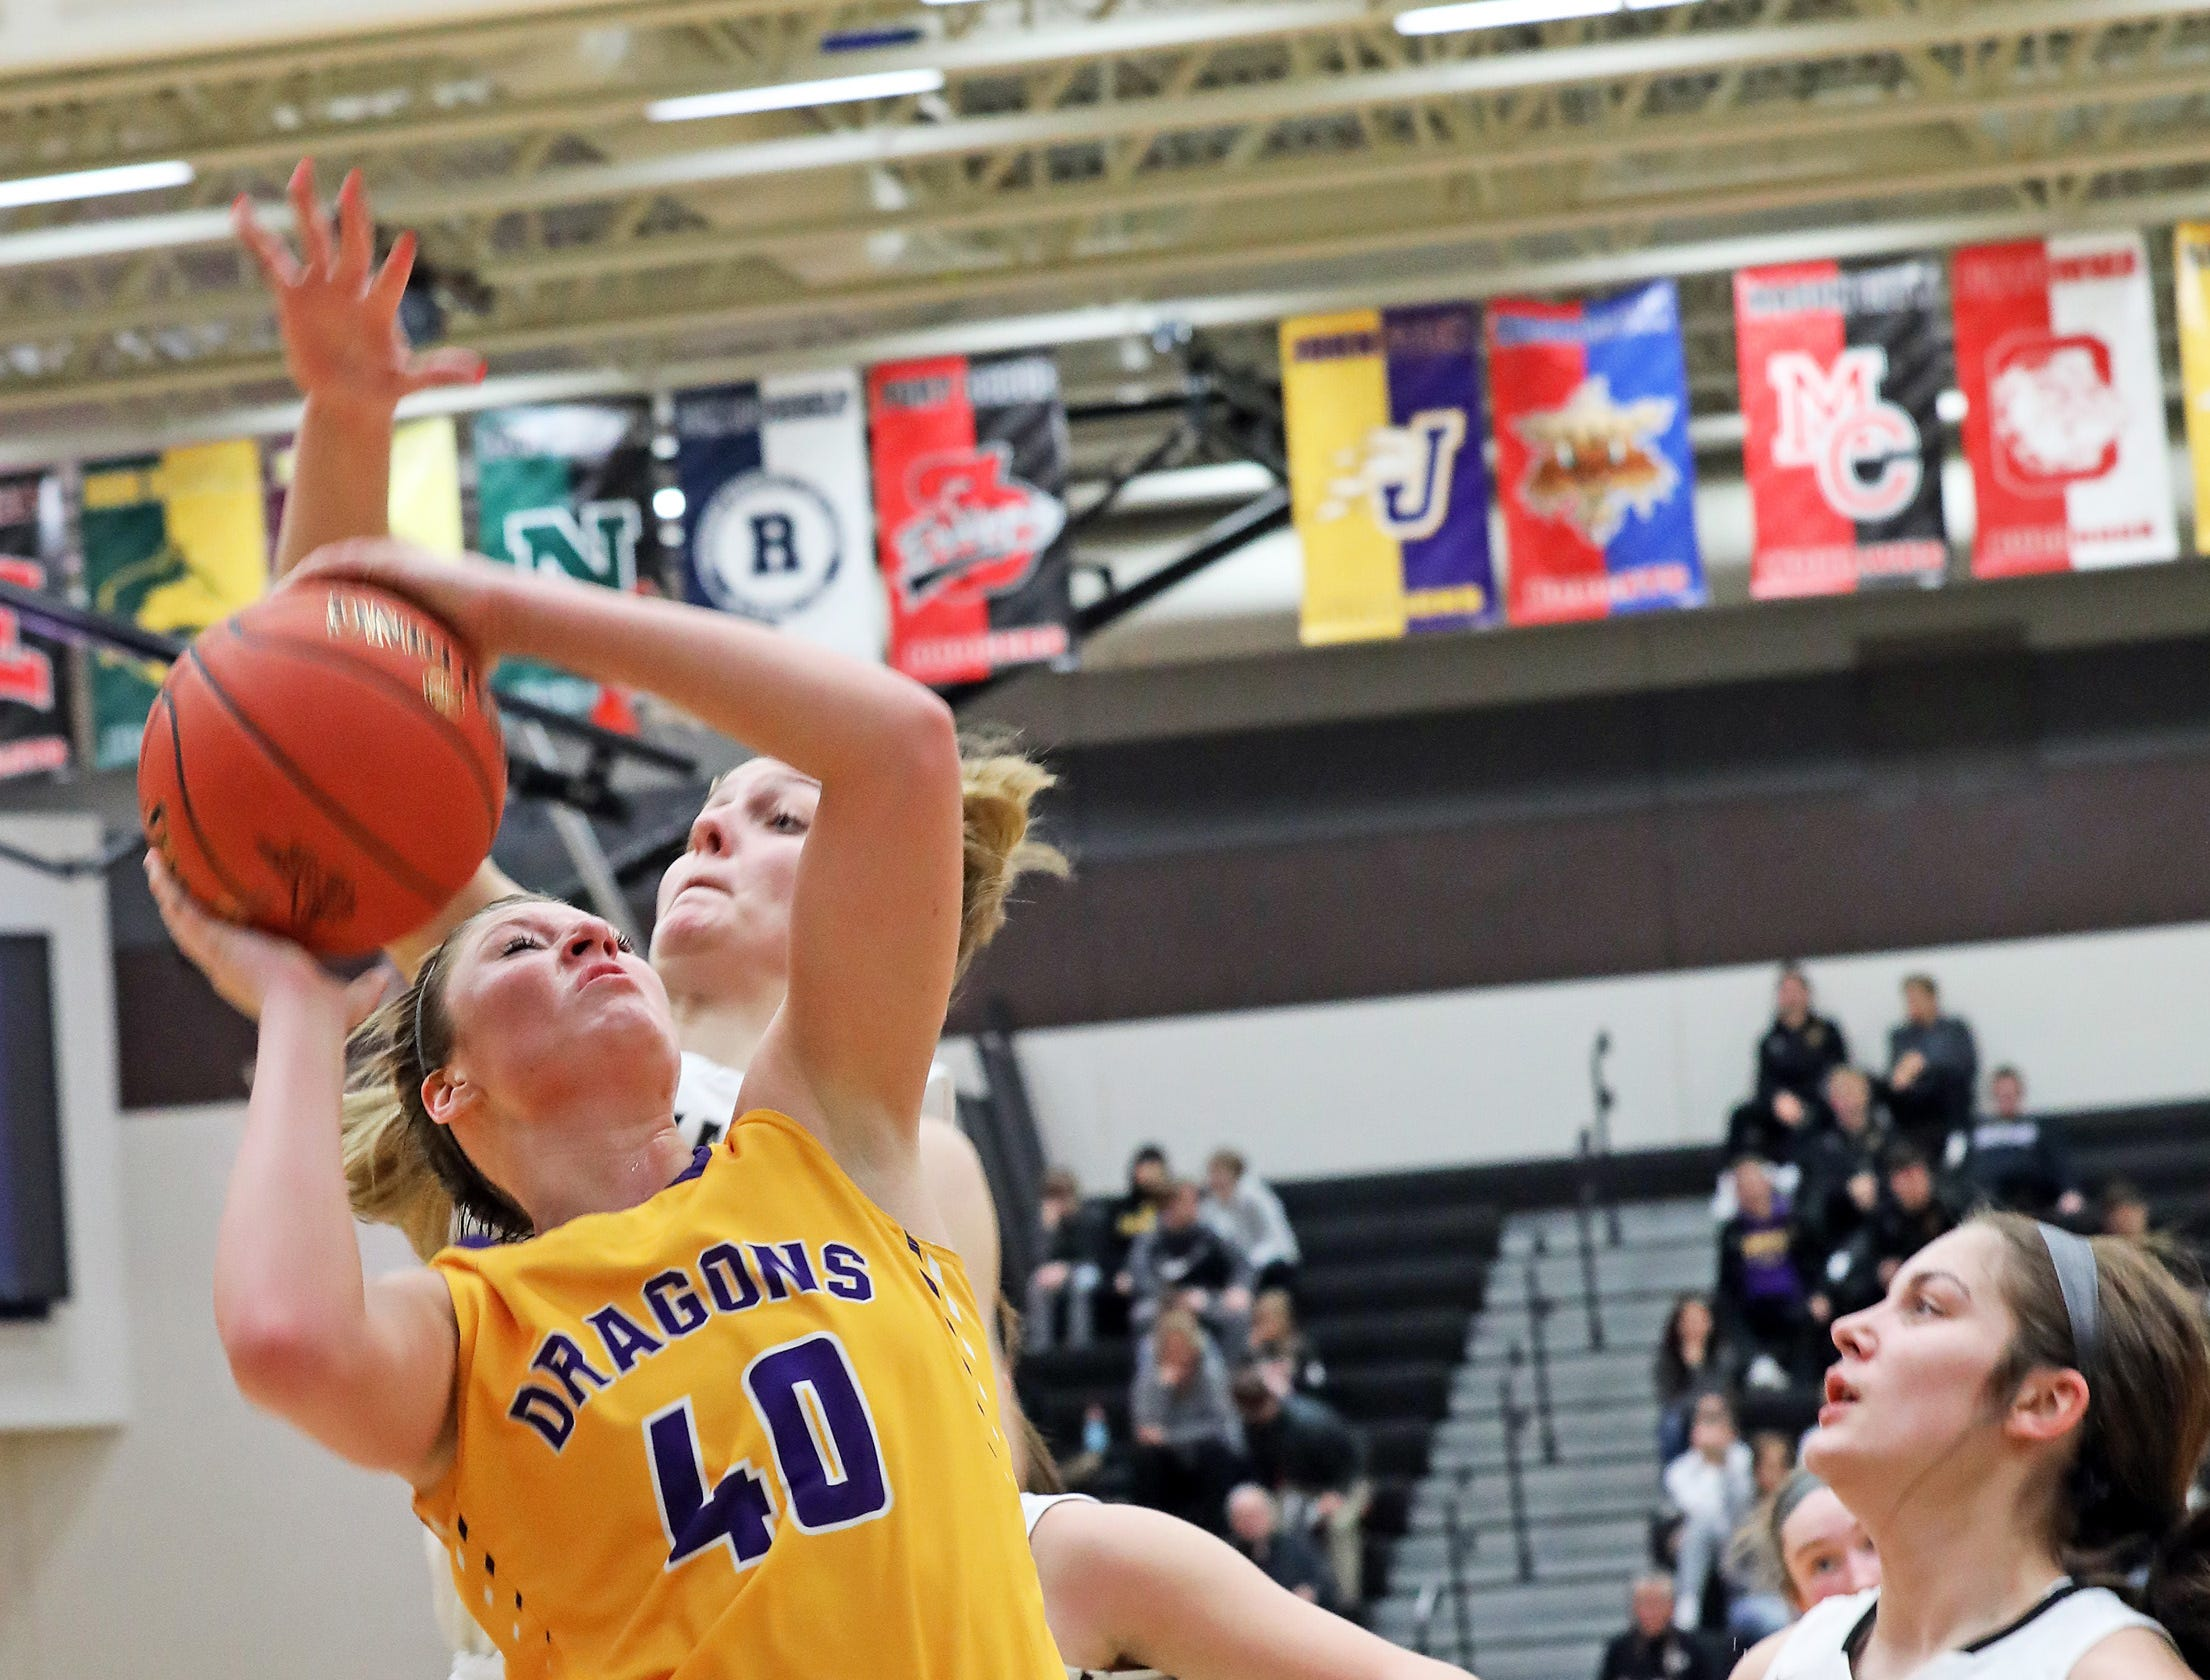 Johnston junior Maddie Mock works hard for a shot as the Johnston Dragons compete against the Ankeny Centennial Jaguars in high school girls basketball on Friday, Jan. 4, 2019 at Ankeny Centennial High School.